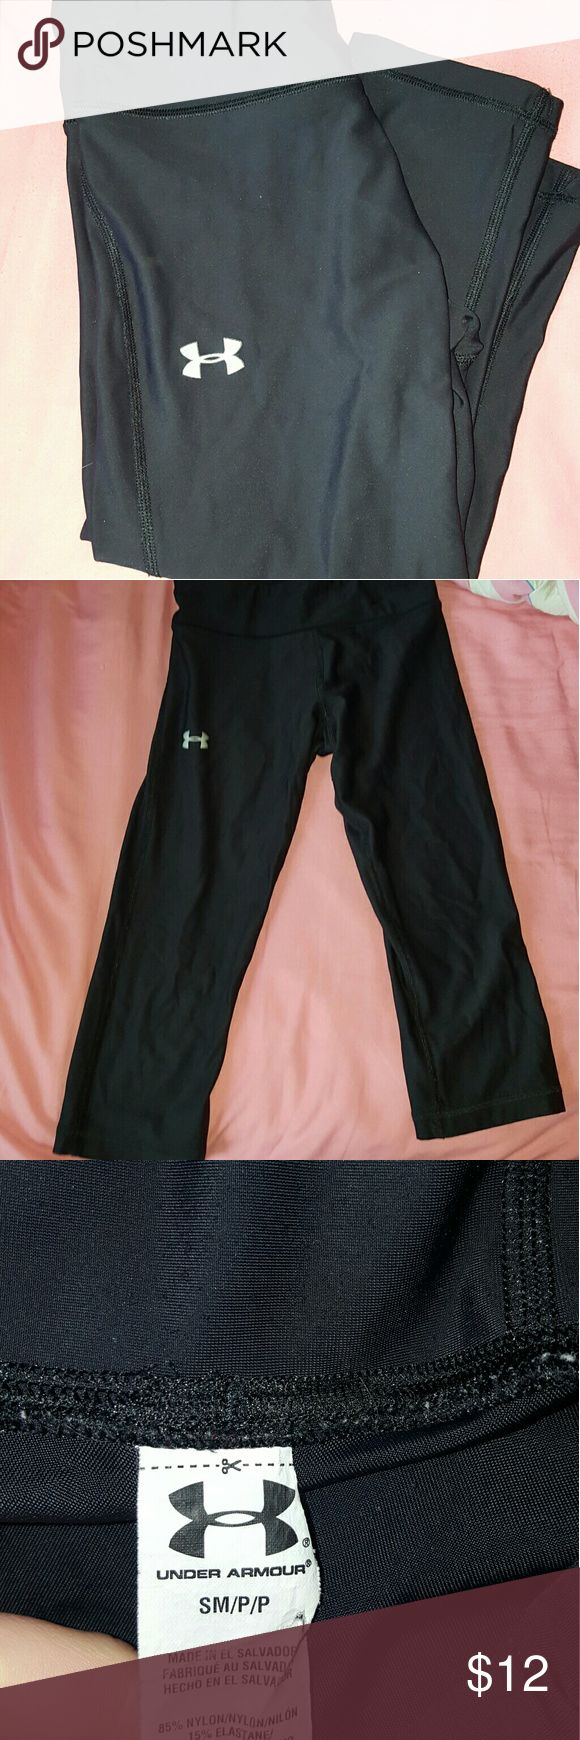 Under armour size small cropped capris Small petite womens under armour black cropped pants. Under Armour Pants